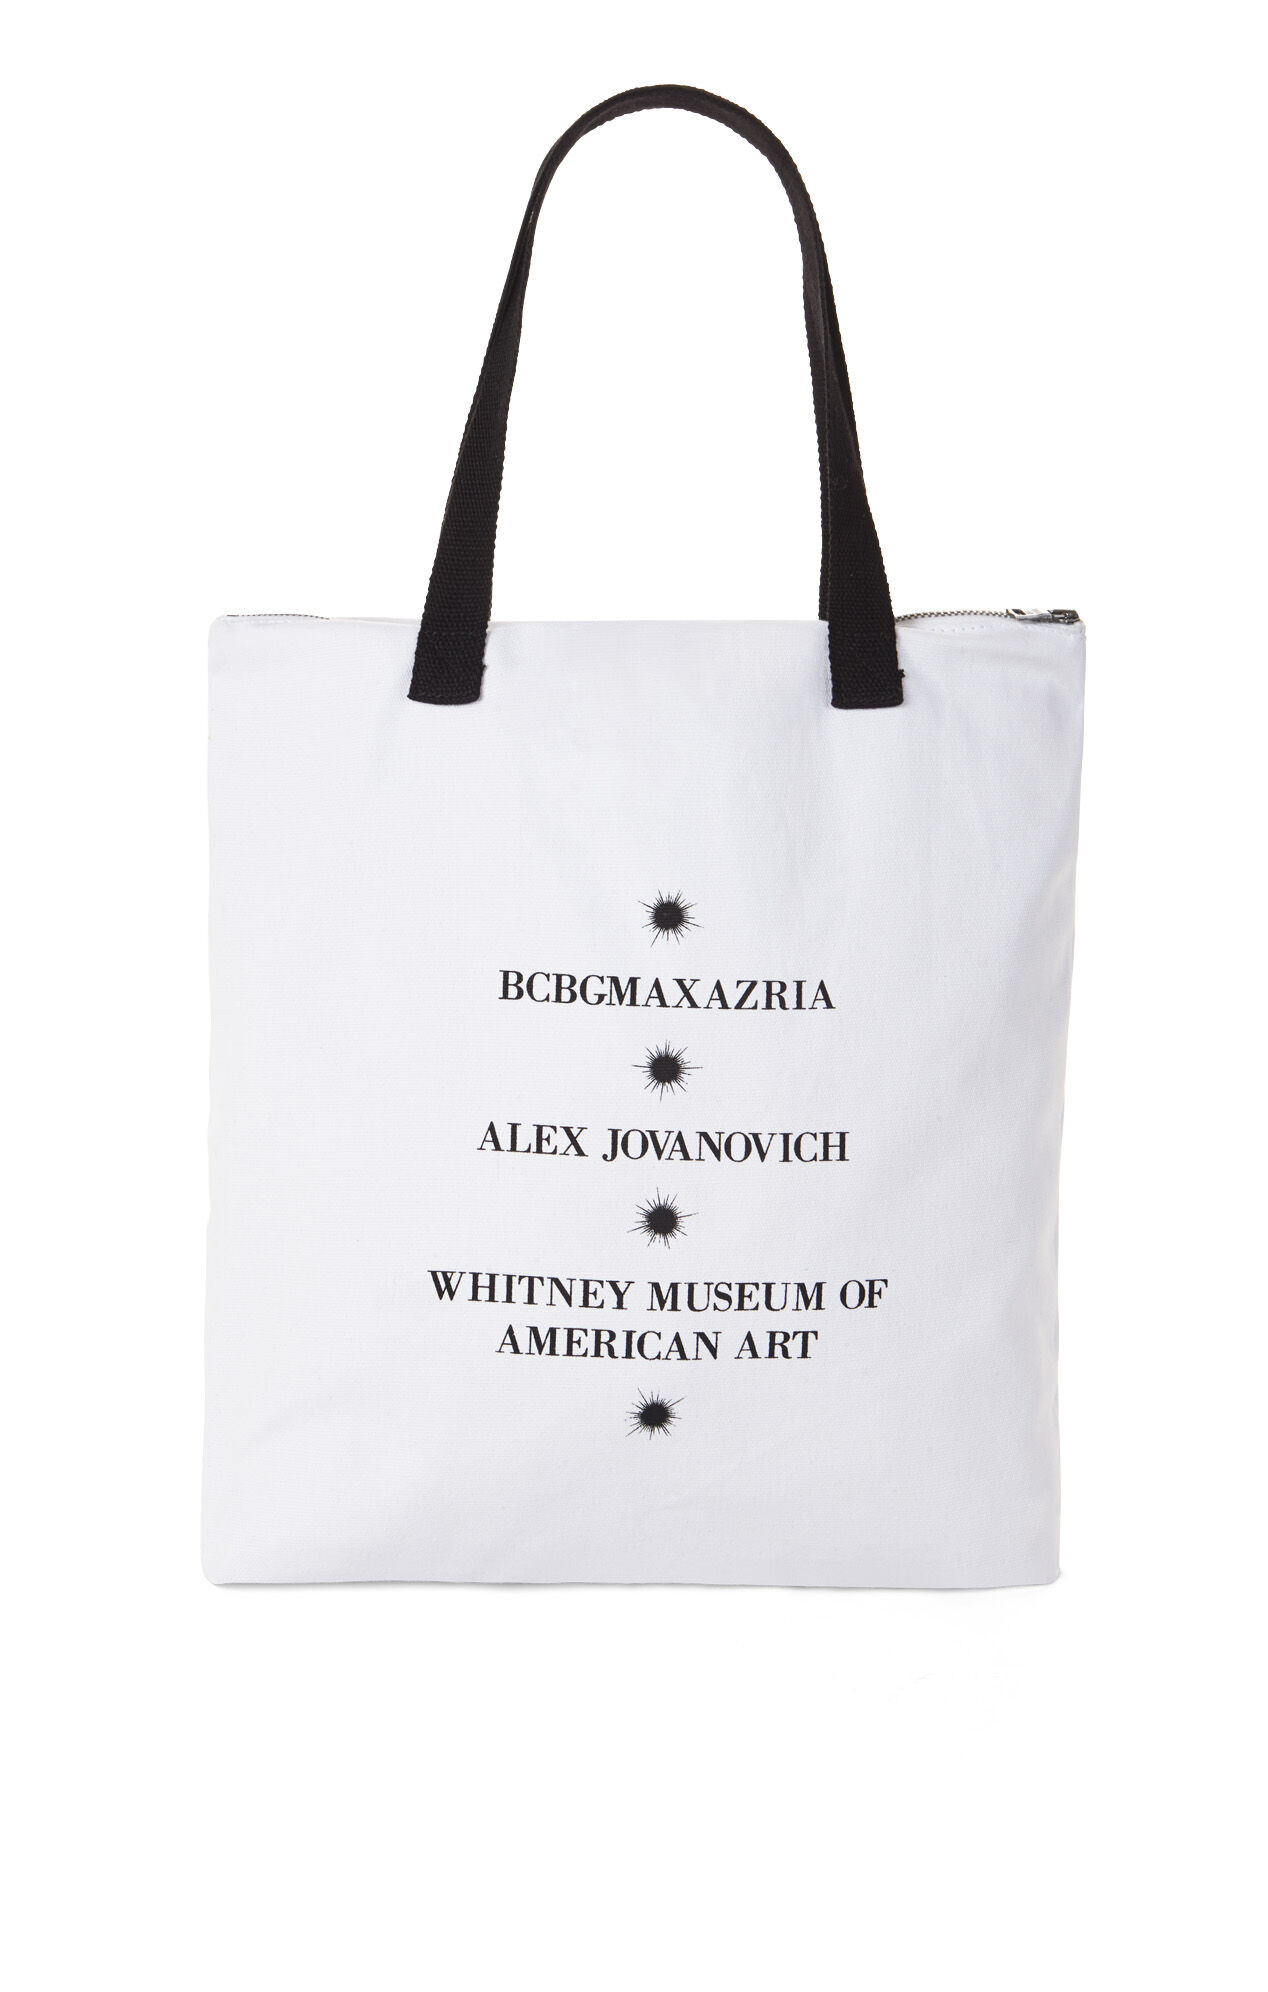 Limited-Edition Biennial Tote